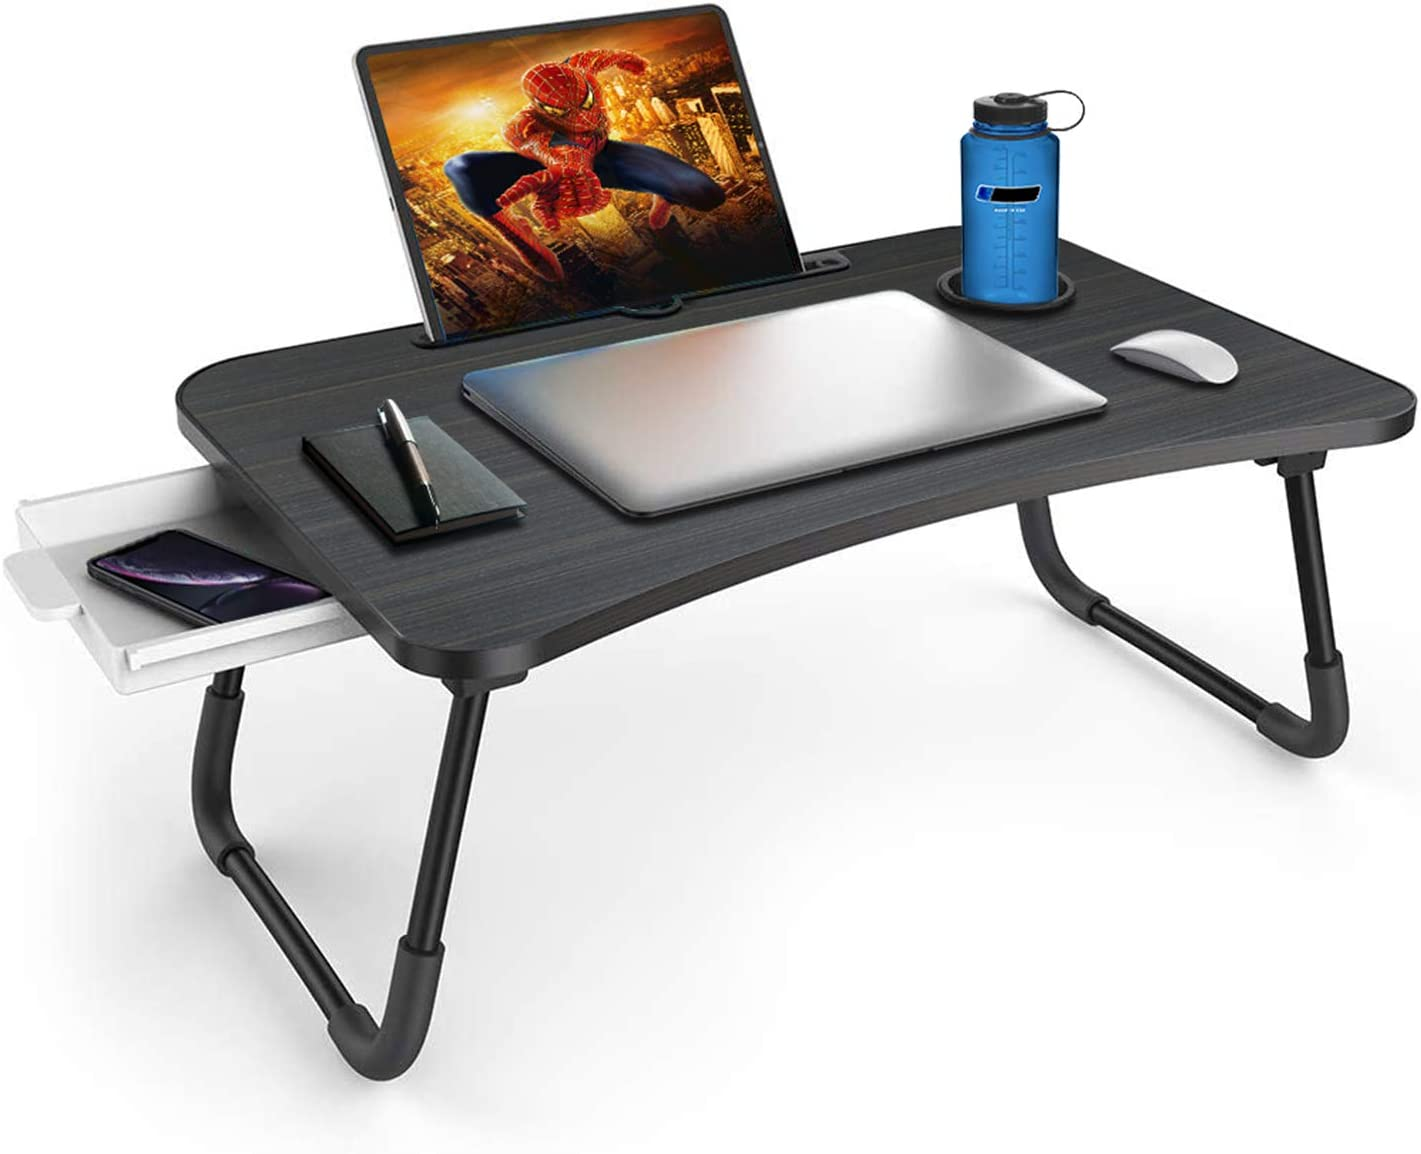 Zapuno Foldable Laptop Bed Table Multi-Function Lap Bed Tray Table with Storage Drawer and Water Bottle Holder, Serving Tray Dining Table with Slot for Eating, Working on Bed/Couch/Sofa (Arc Shape)